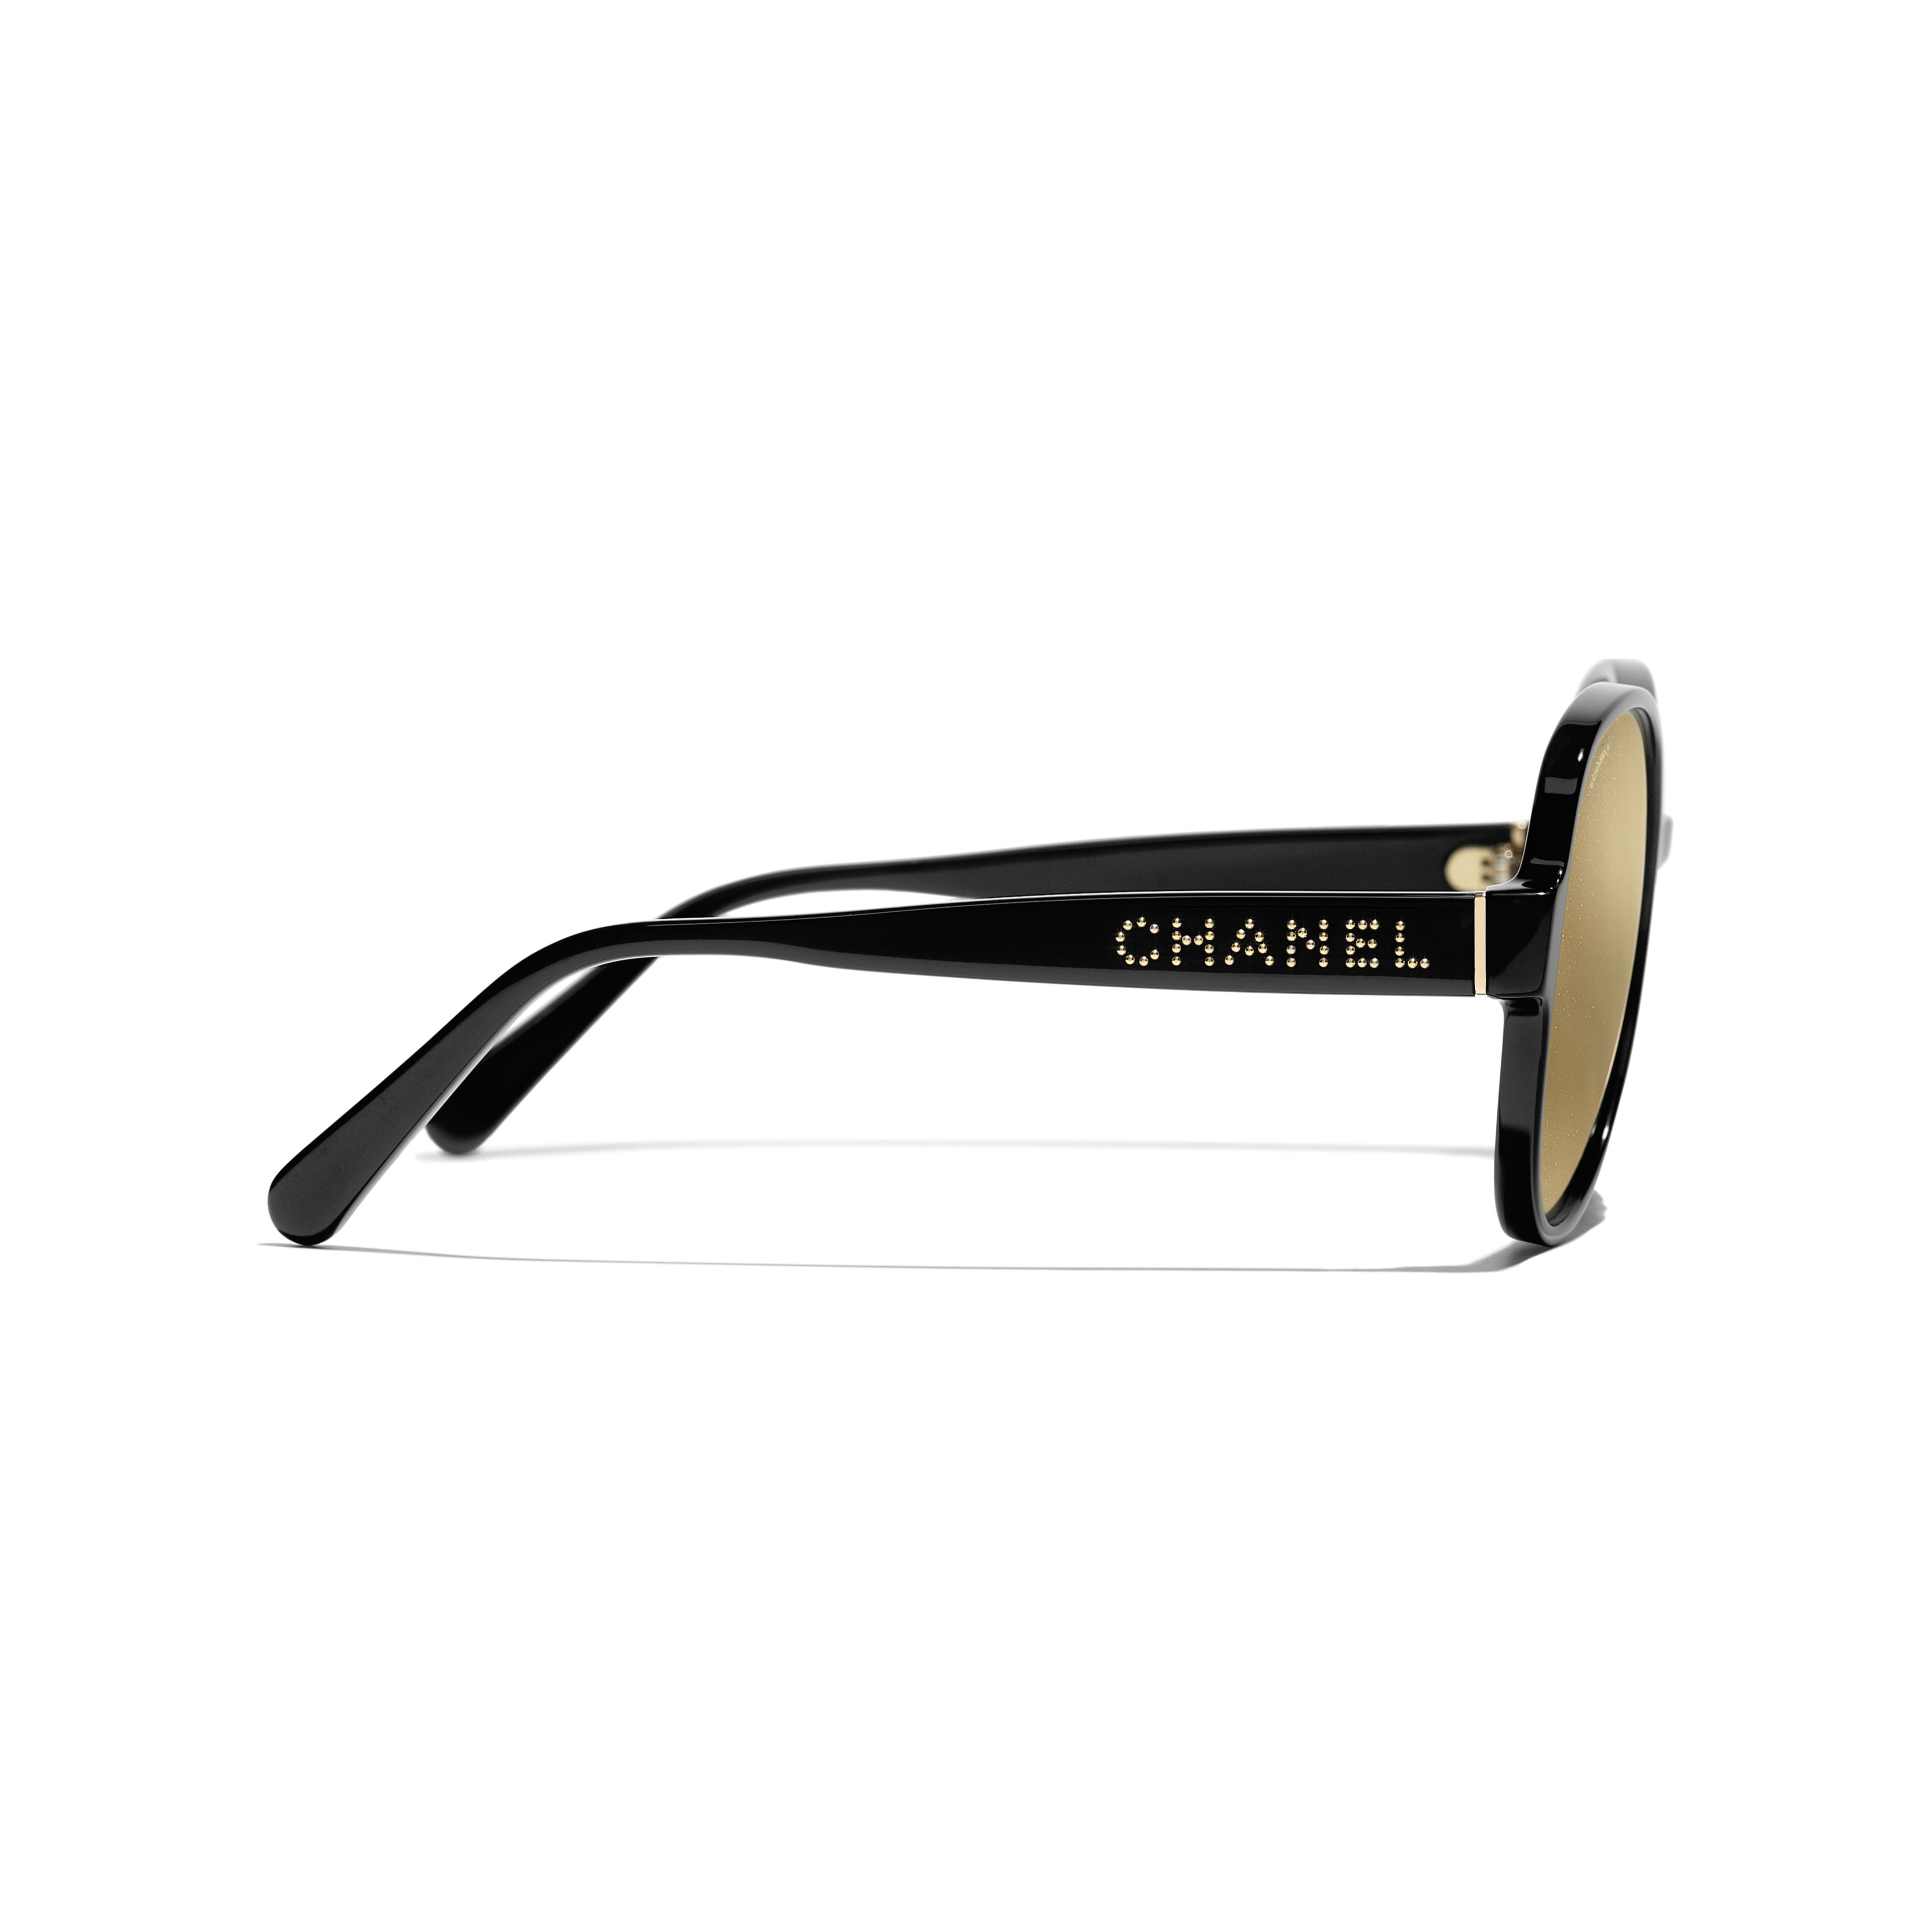 Pilot Sunglasses - Black - Acetate - Other view - see full sized version